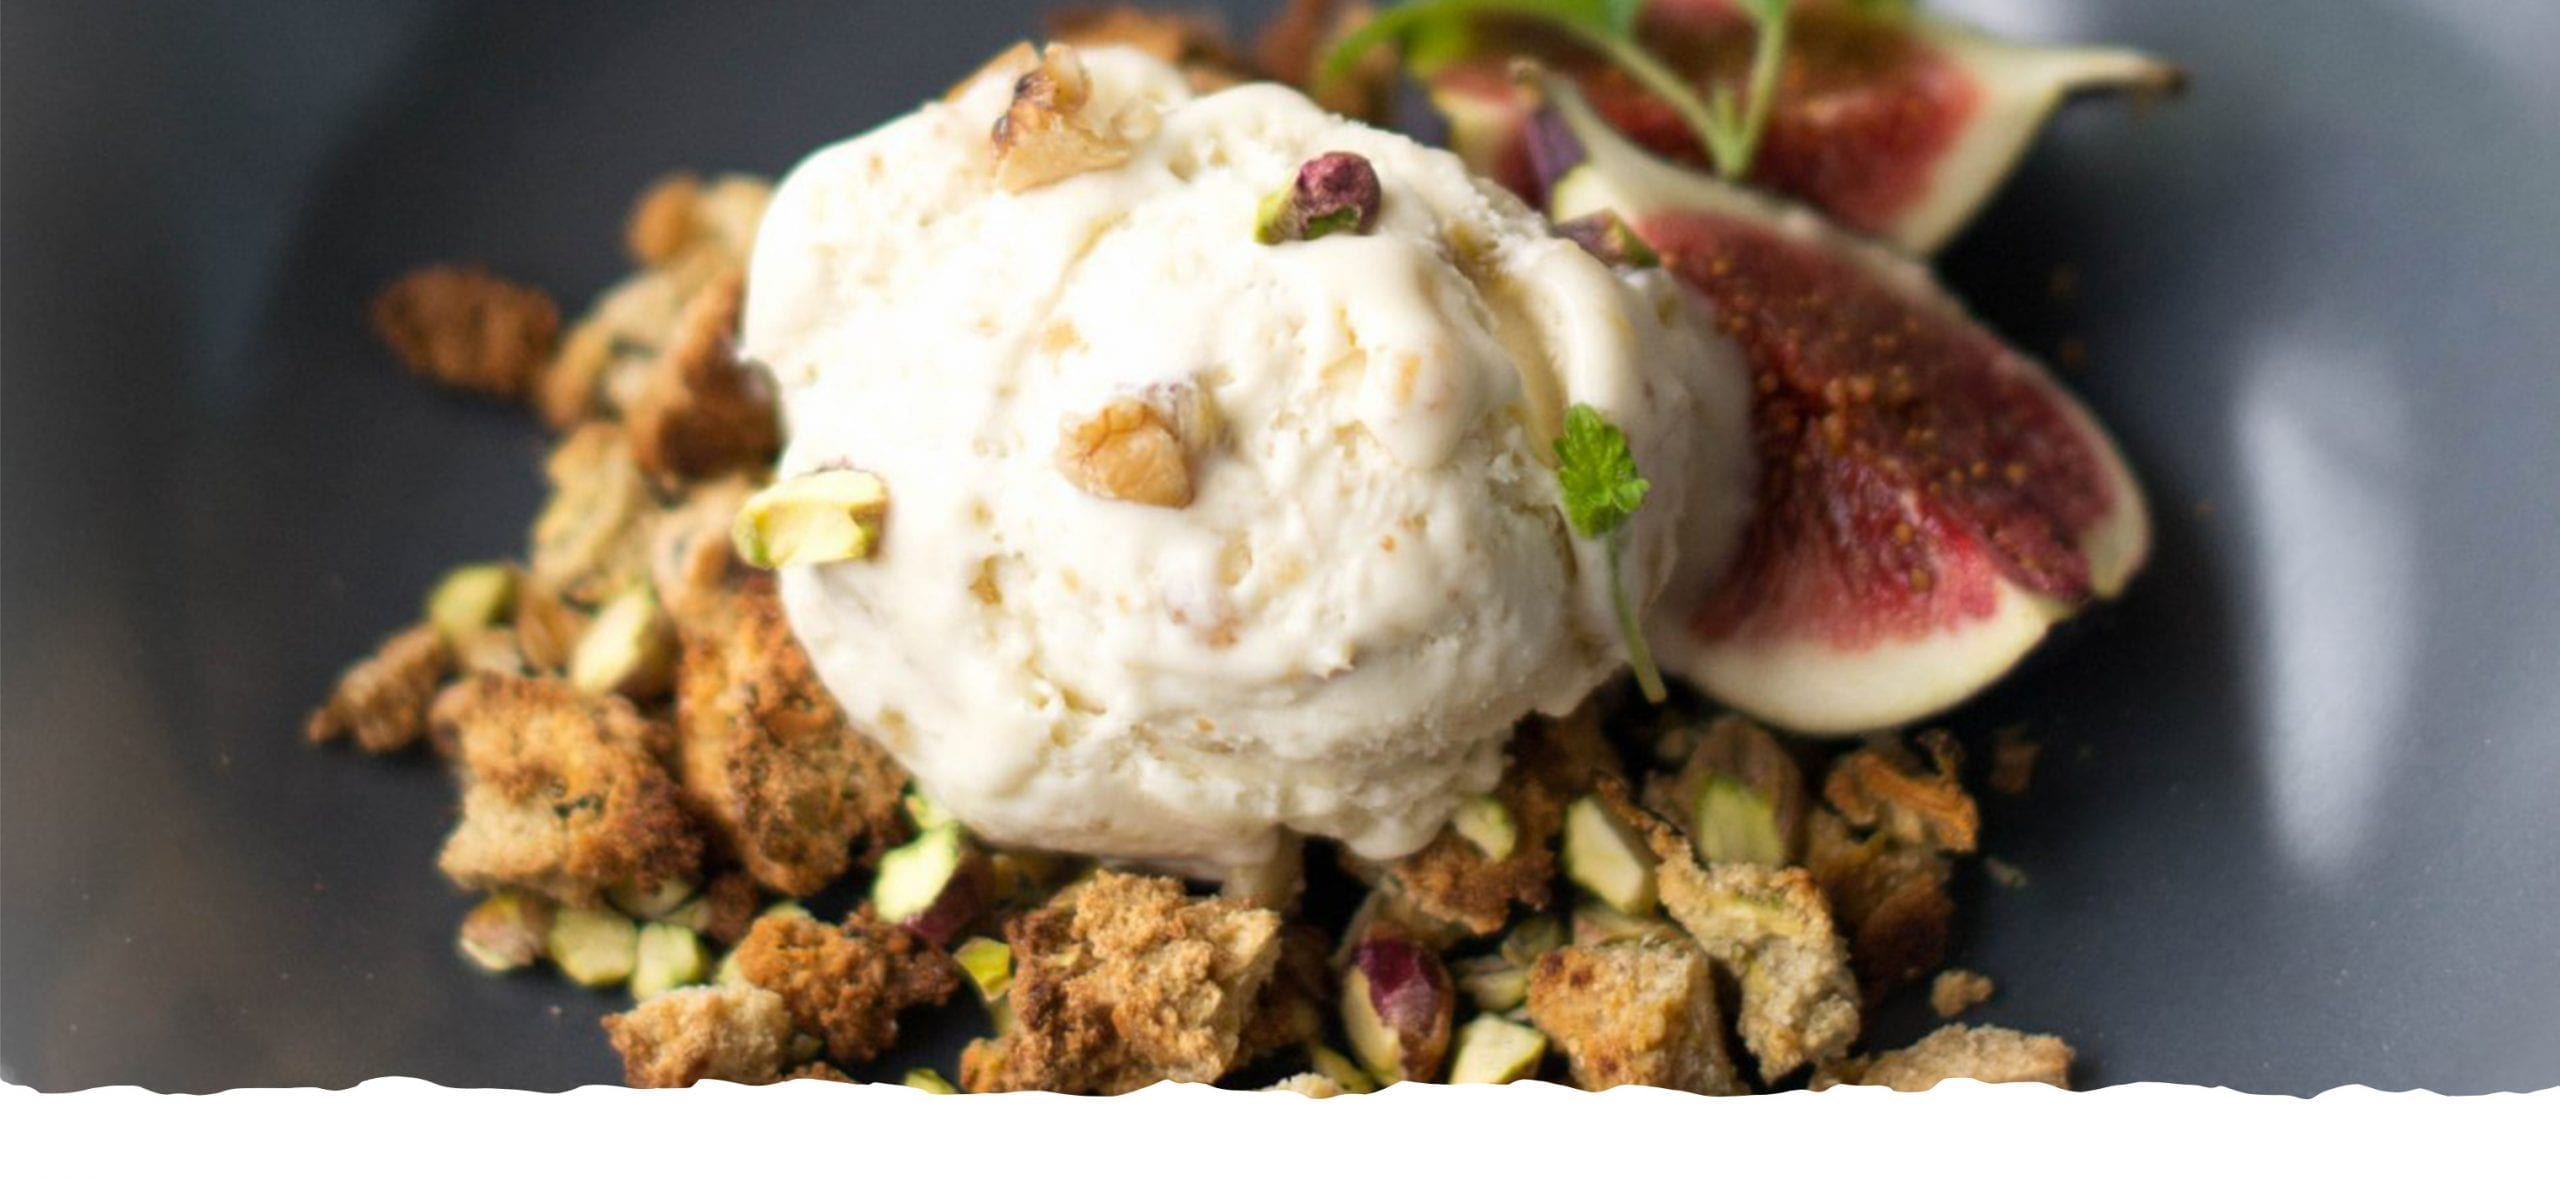 Ice Cream with Fig and Walnuts Jam